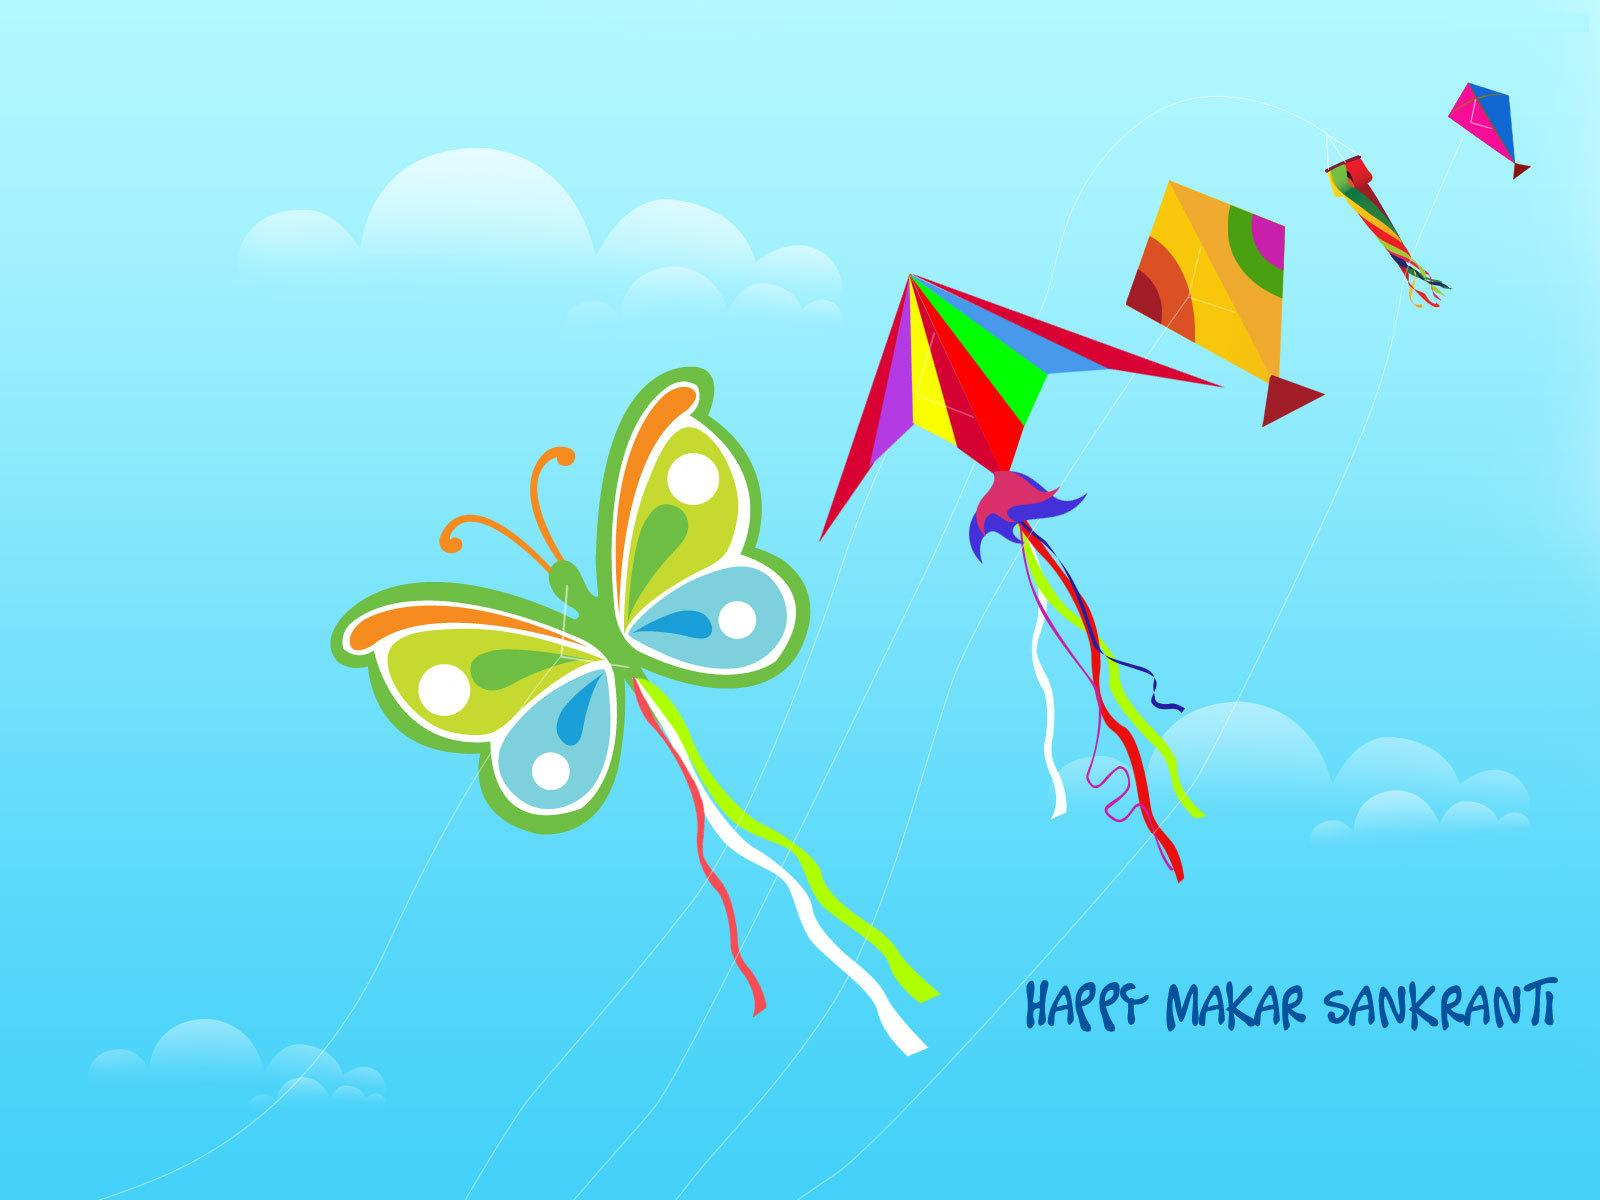 Makar Sankranti 2018 Image For WhatsApp